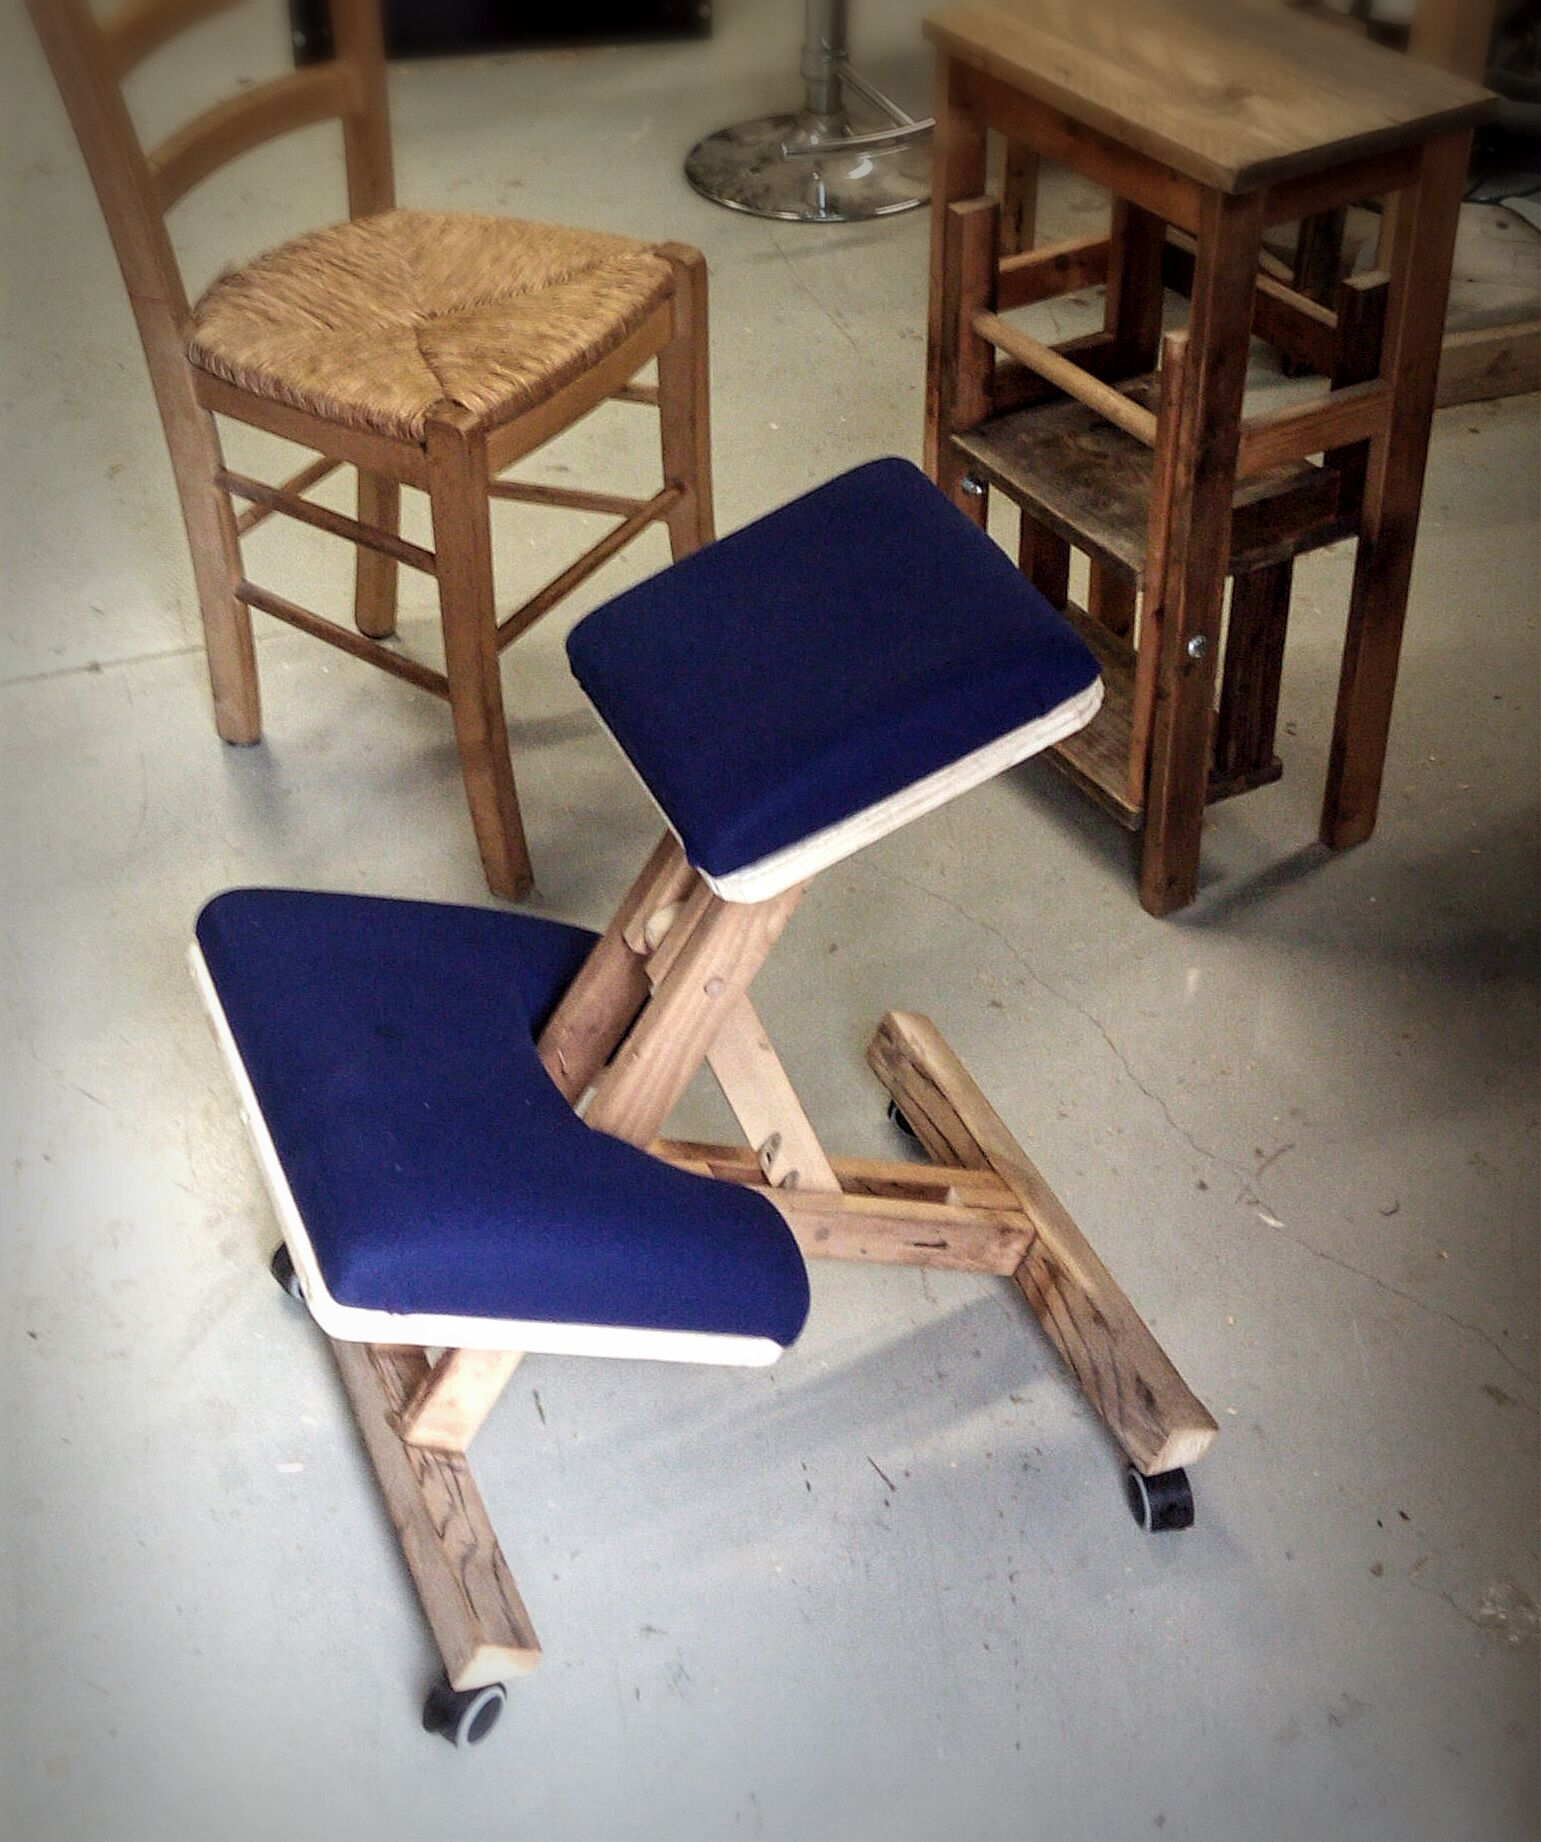 Wooden Kneeling Chair 14 Steps With Pictures Instructables